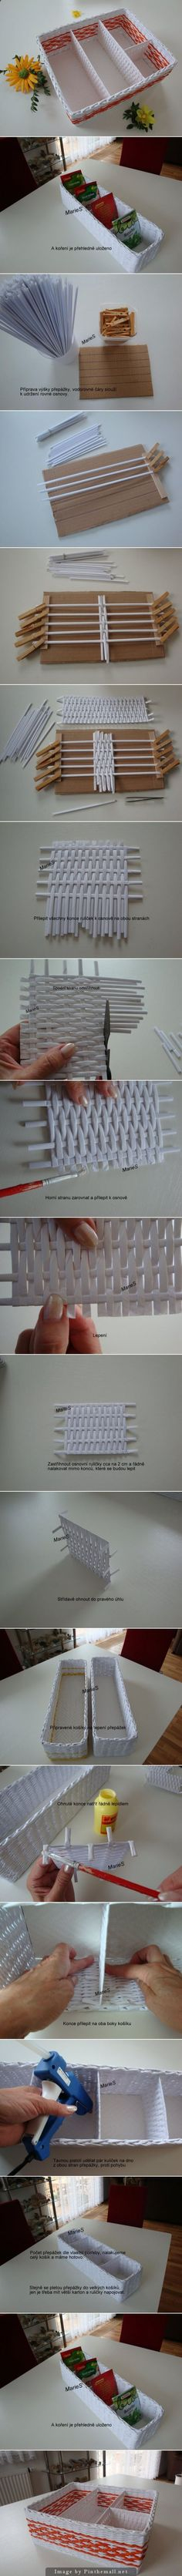 I guess this would be an alternative method to actually weaving. Hobbies And Crafts, Fun Crafts, Diy And Crafts, Diy Paper, Paper Art, Diy Projects To Try, Craft Projects, Origami, Diy Y Manualidades